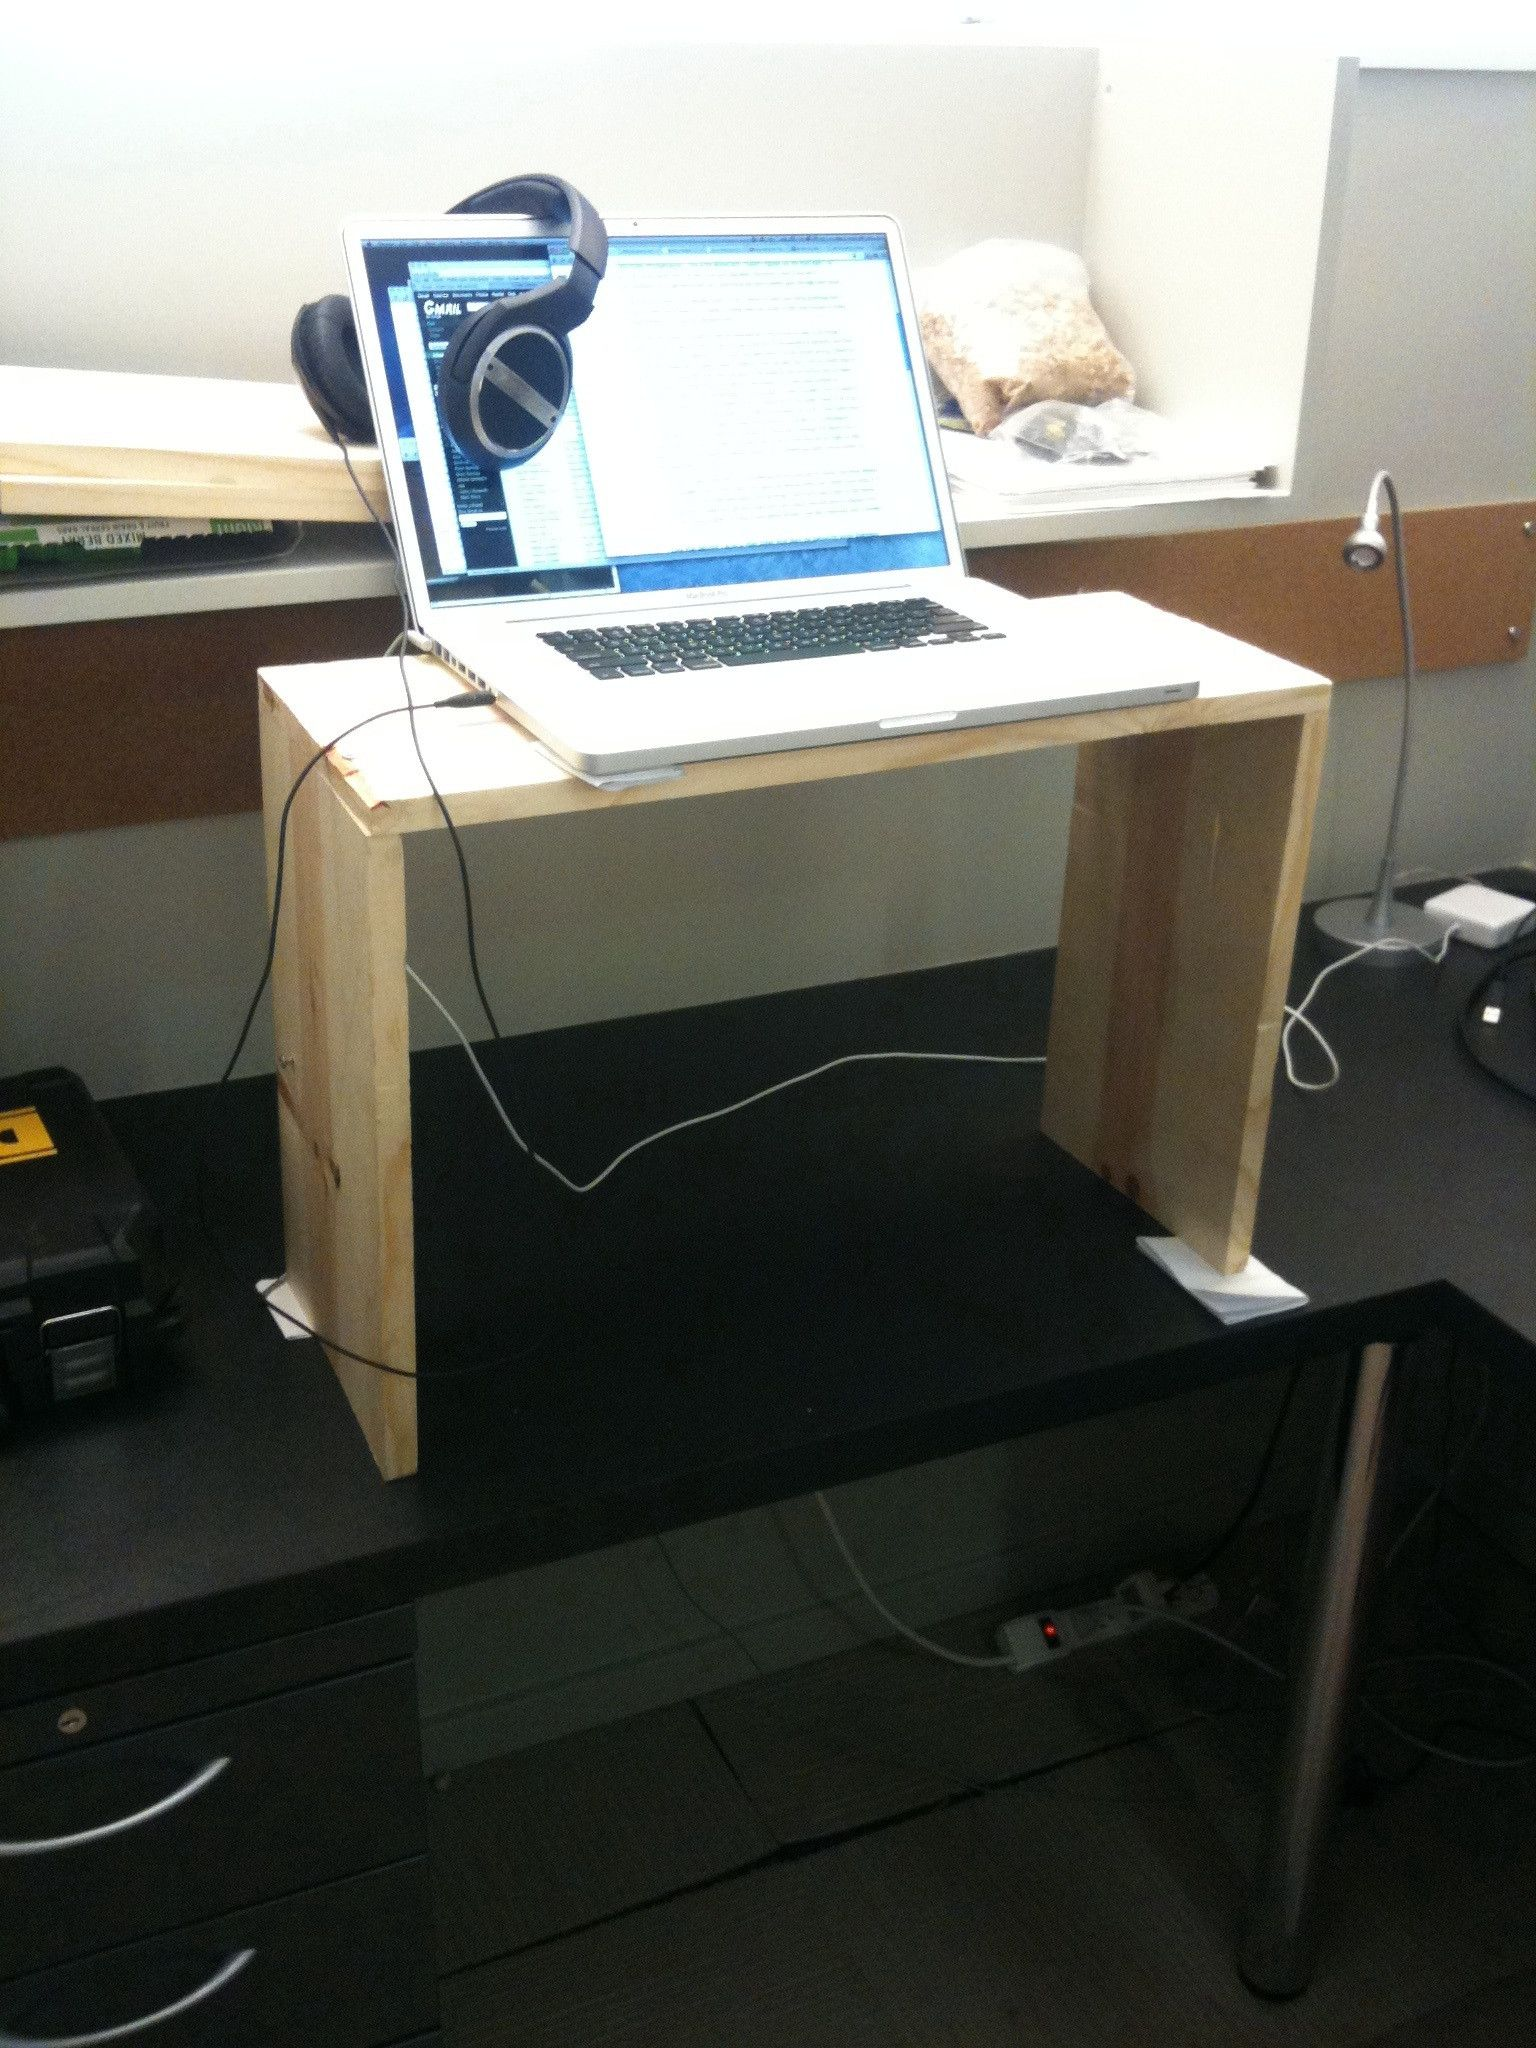 Diy Desktop Standing Desk Quick And Free Ways To Convert An Existing Desk Into A